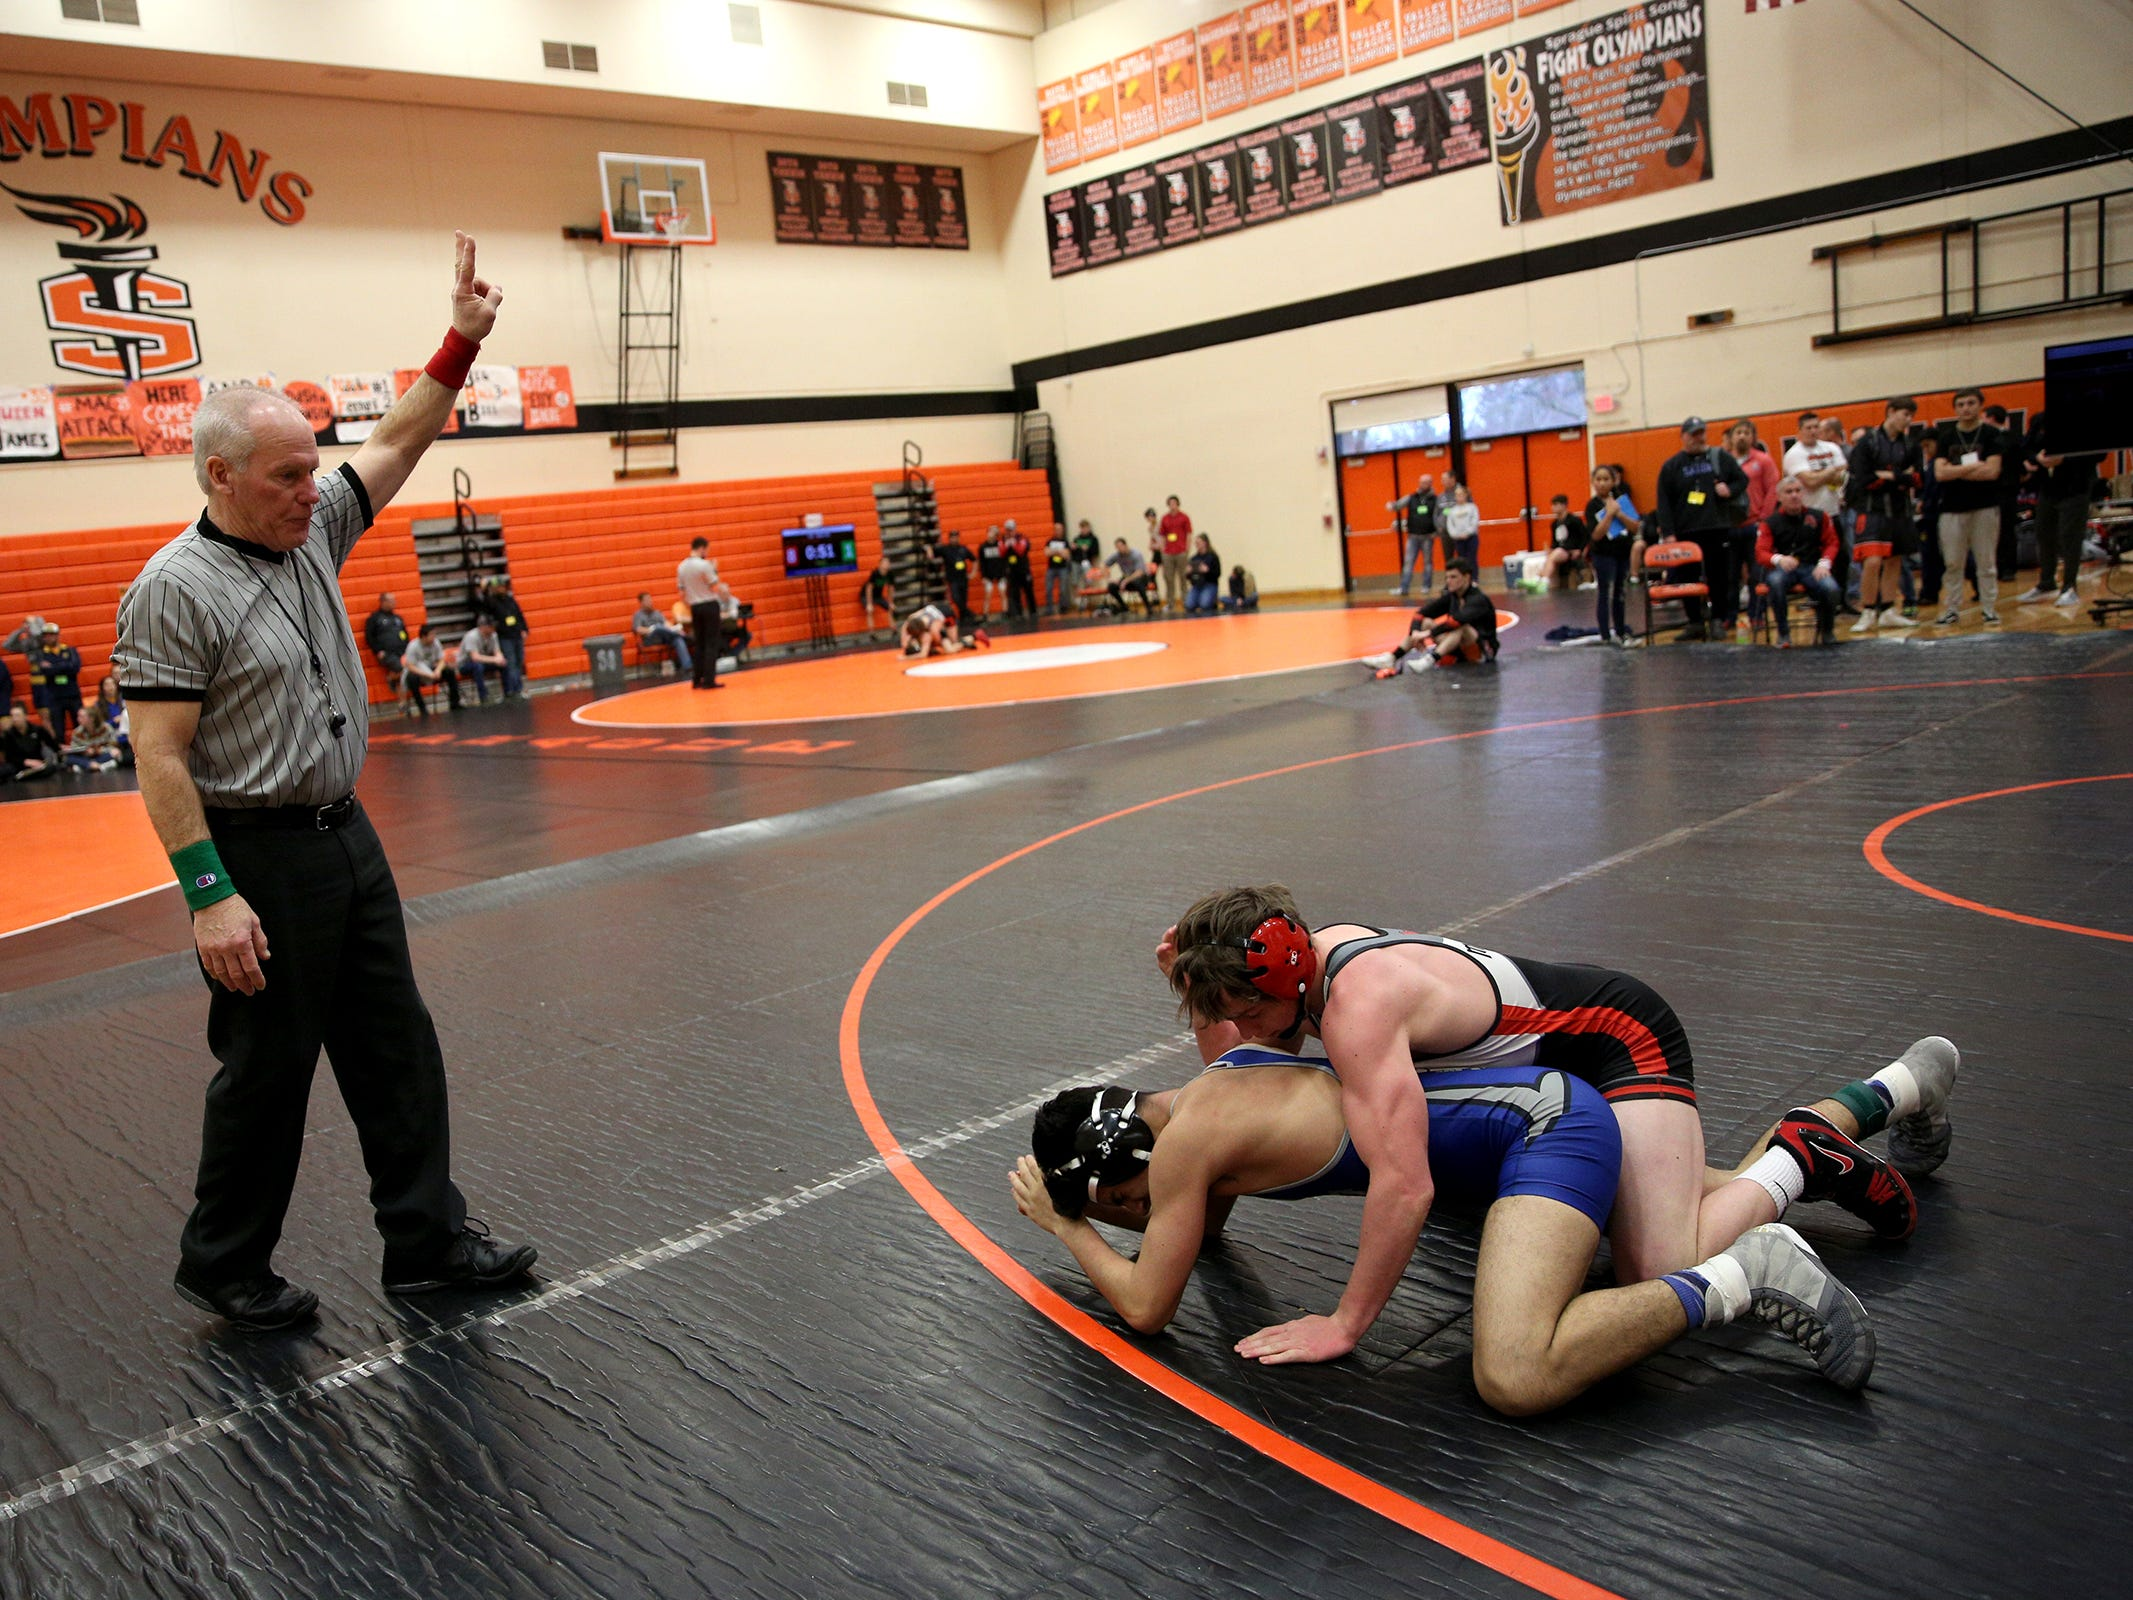 Mountain View's Beau Olson holds down McNary's Giovanni Cervantes as they compete in the 138 pound weight class during the Mountain Valley Conference district wrestling tournament at Sprague High School in Salem on Friday, Feb. 15, 2019.